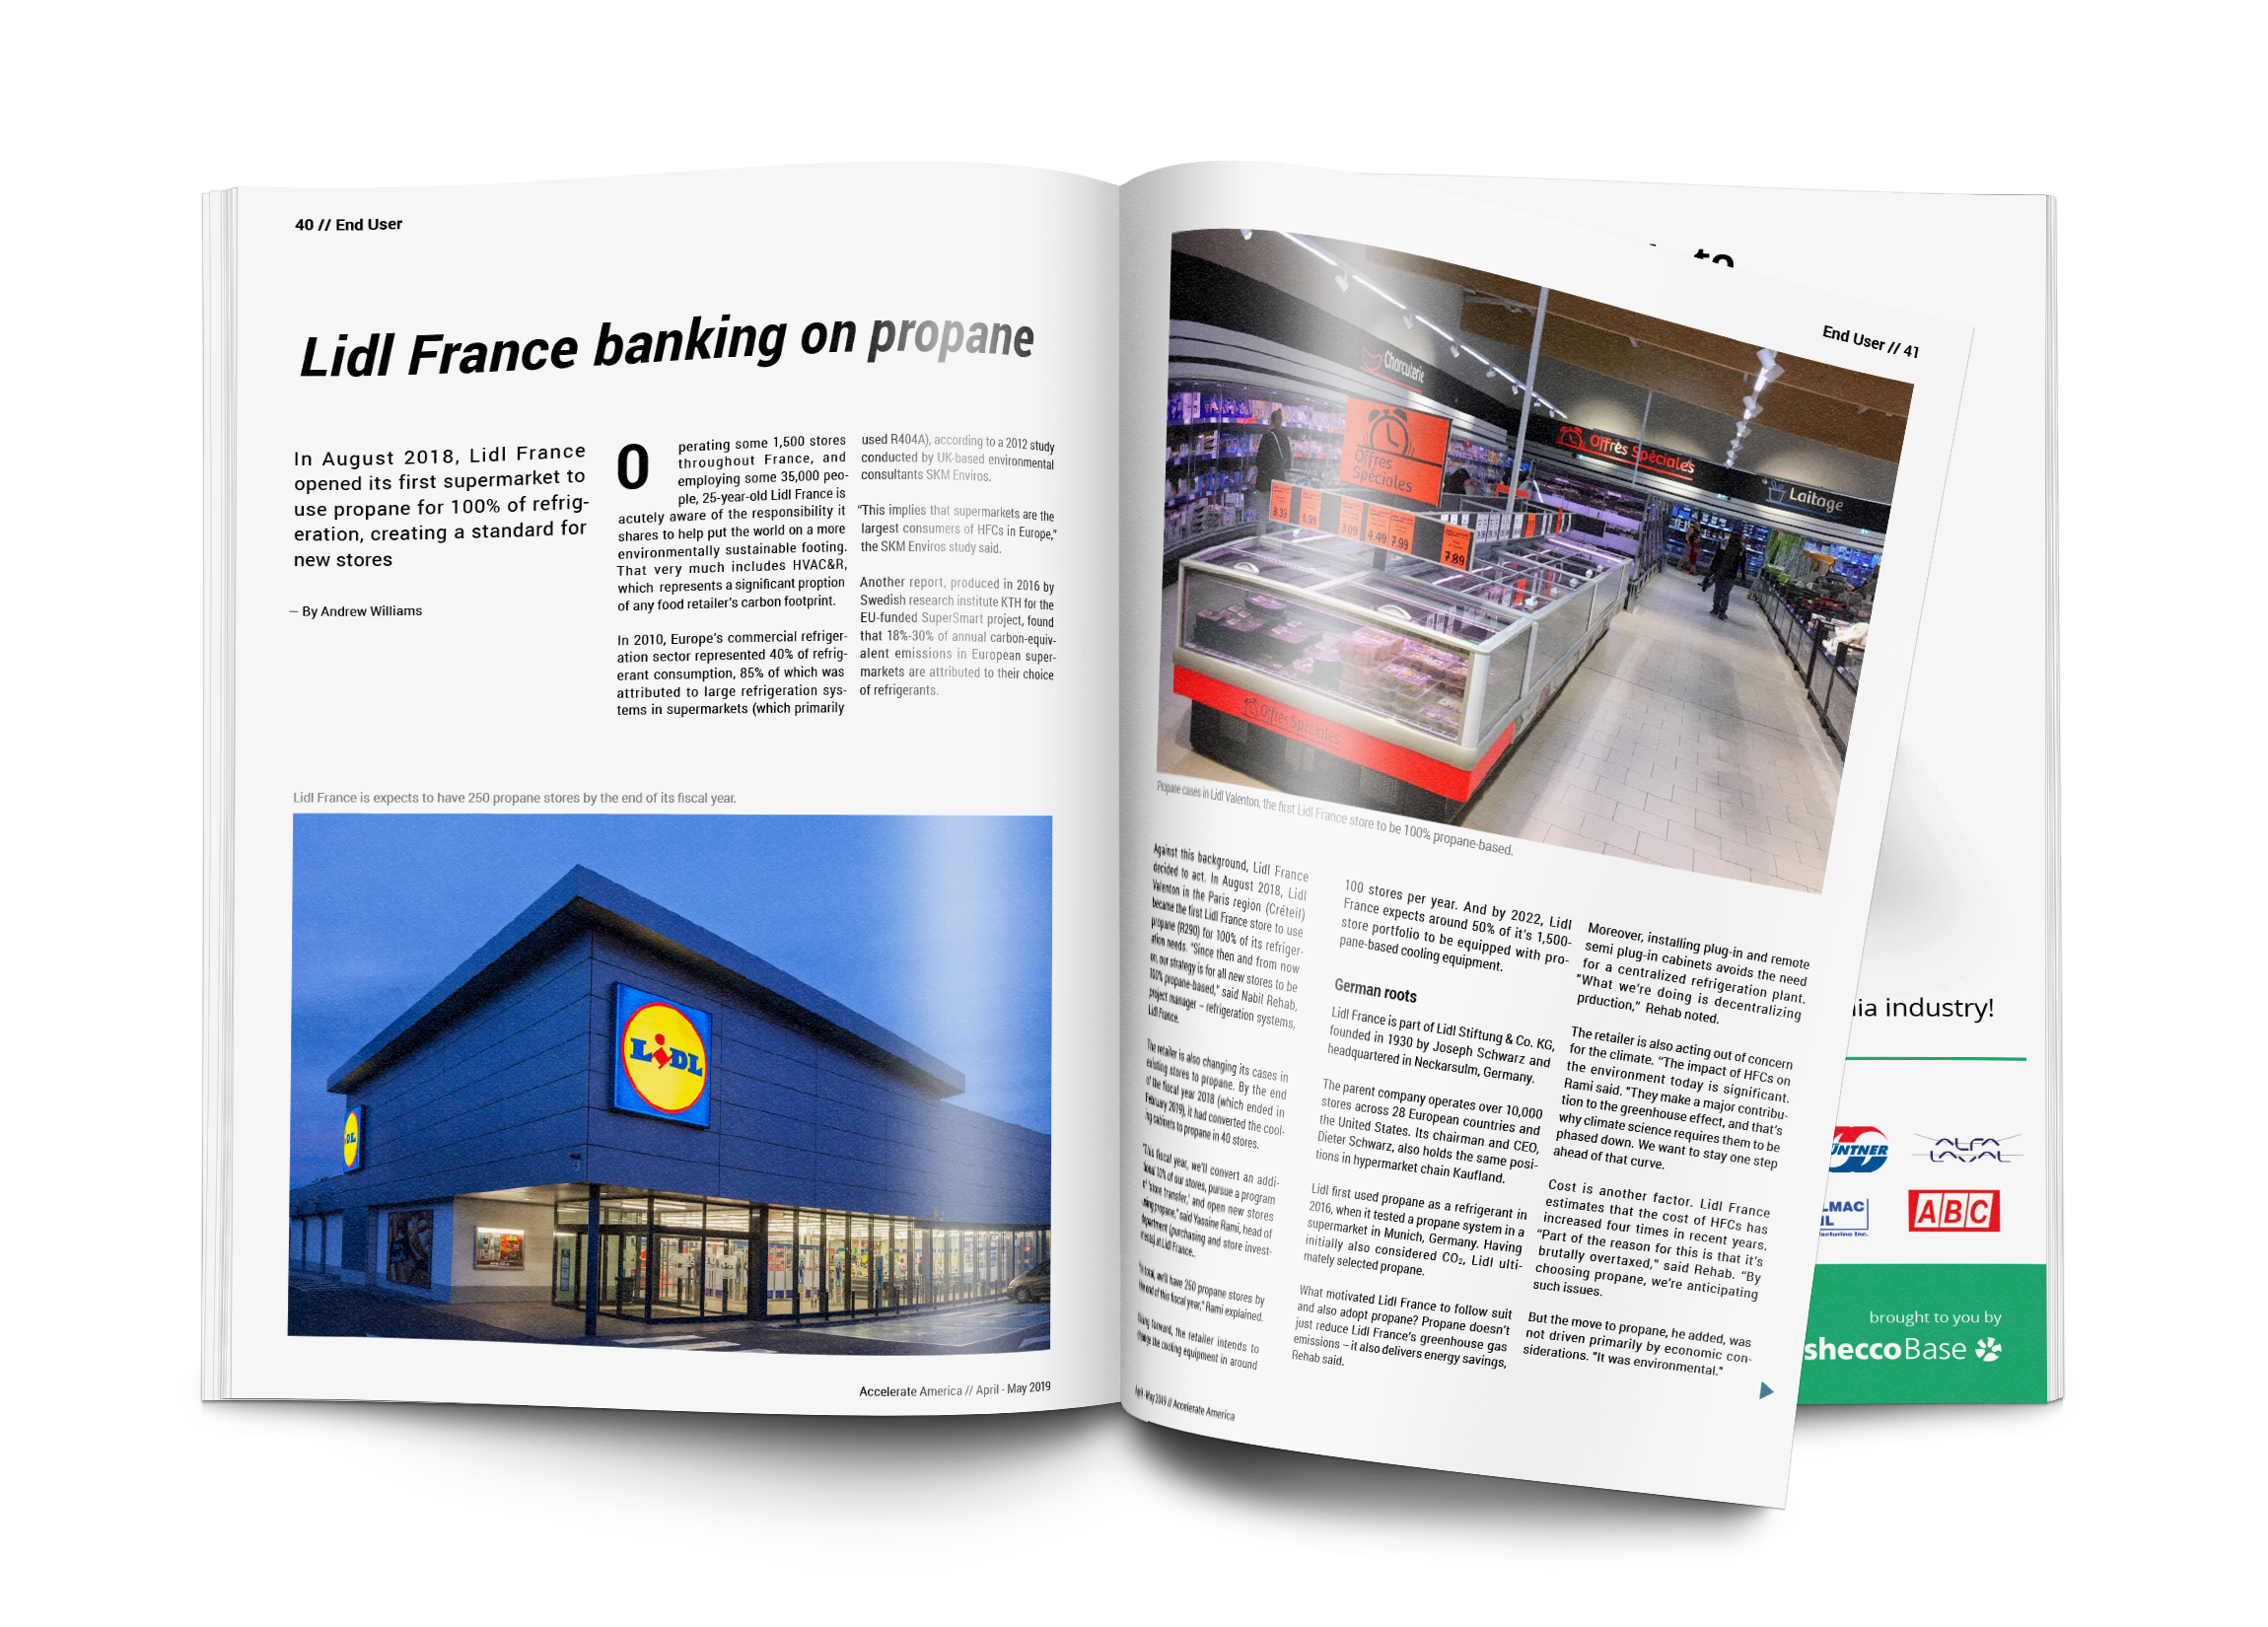 Lidl France banking on propane